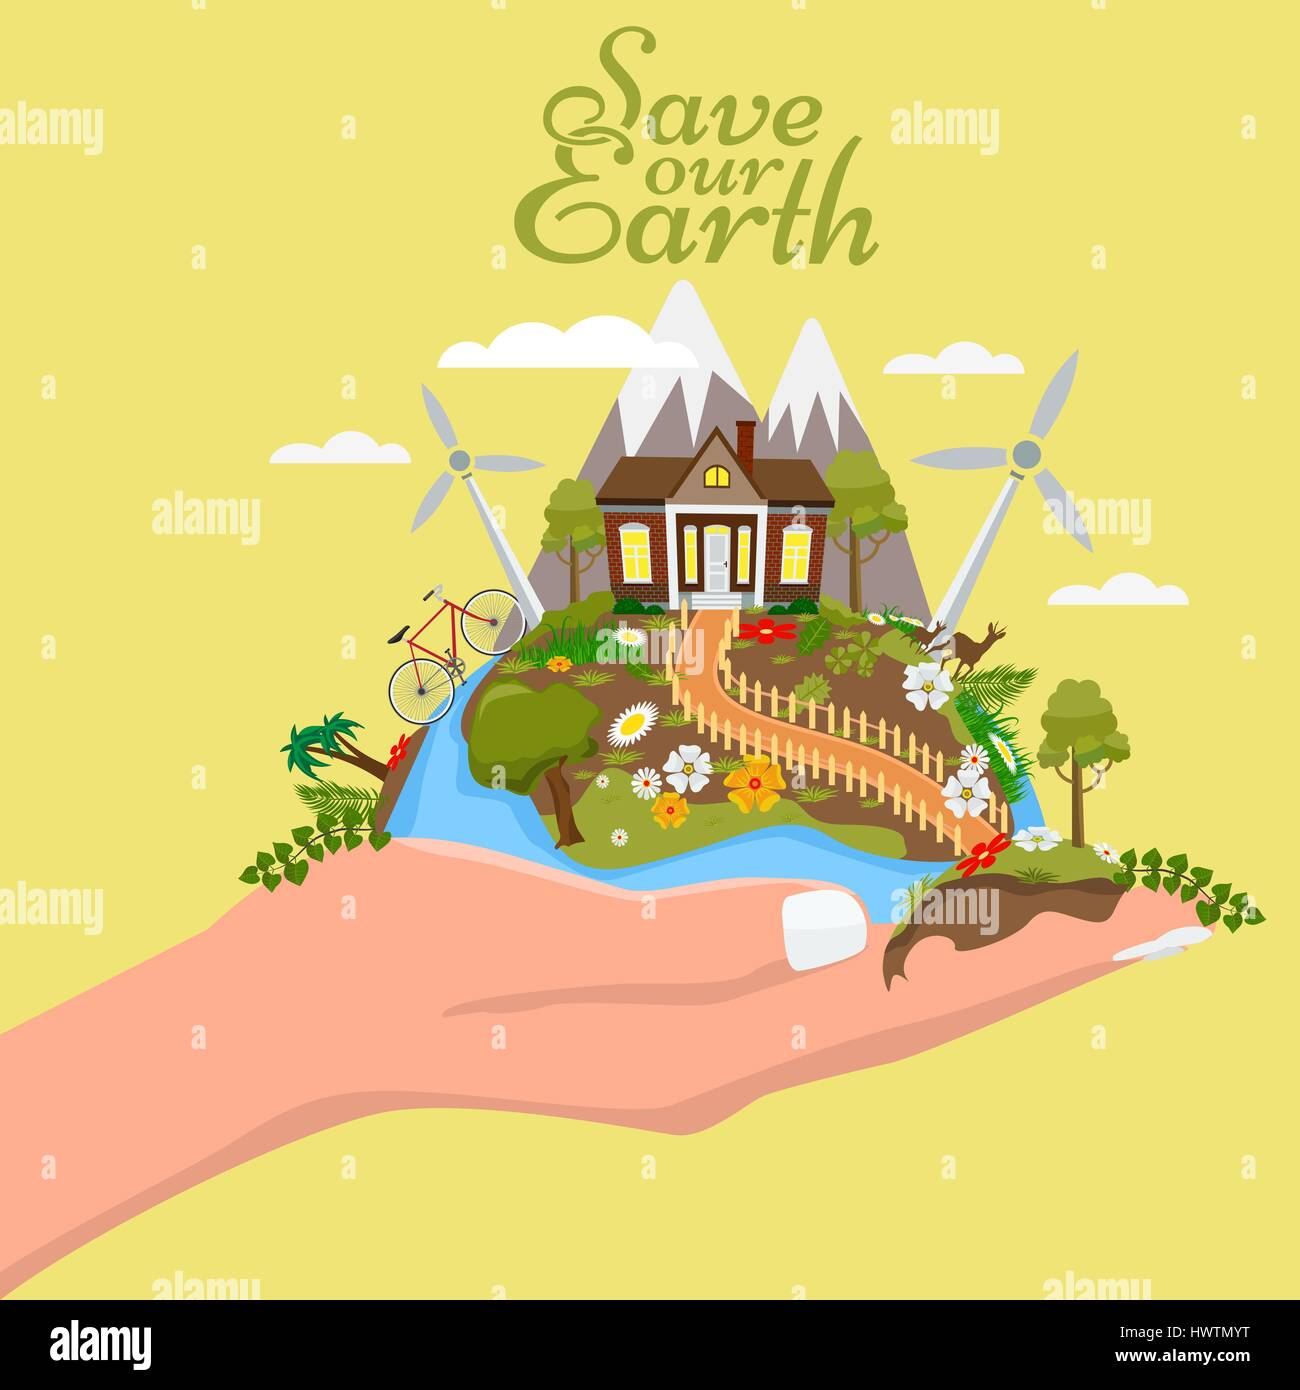 Earth day illustration. Hand holding the earth with cute and beautiful nature. Illustrated vector. - Stock Image